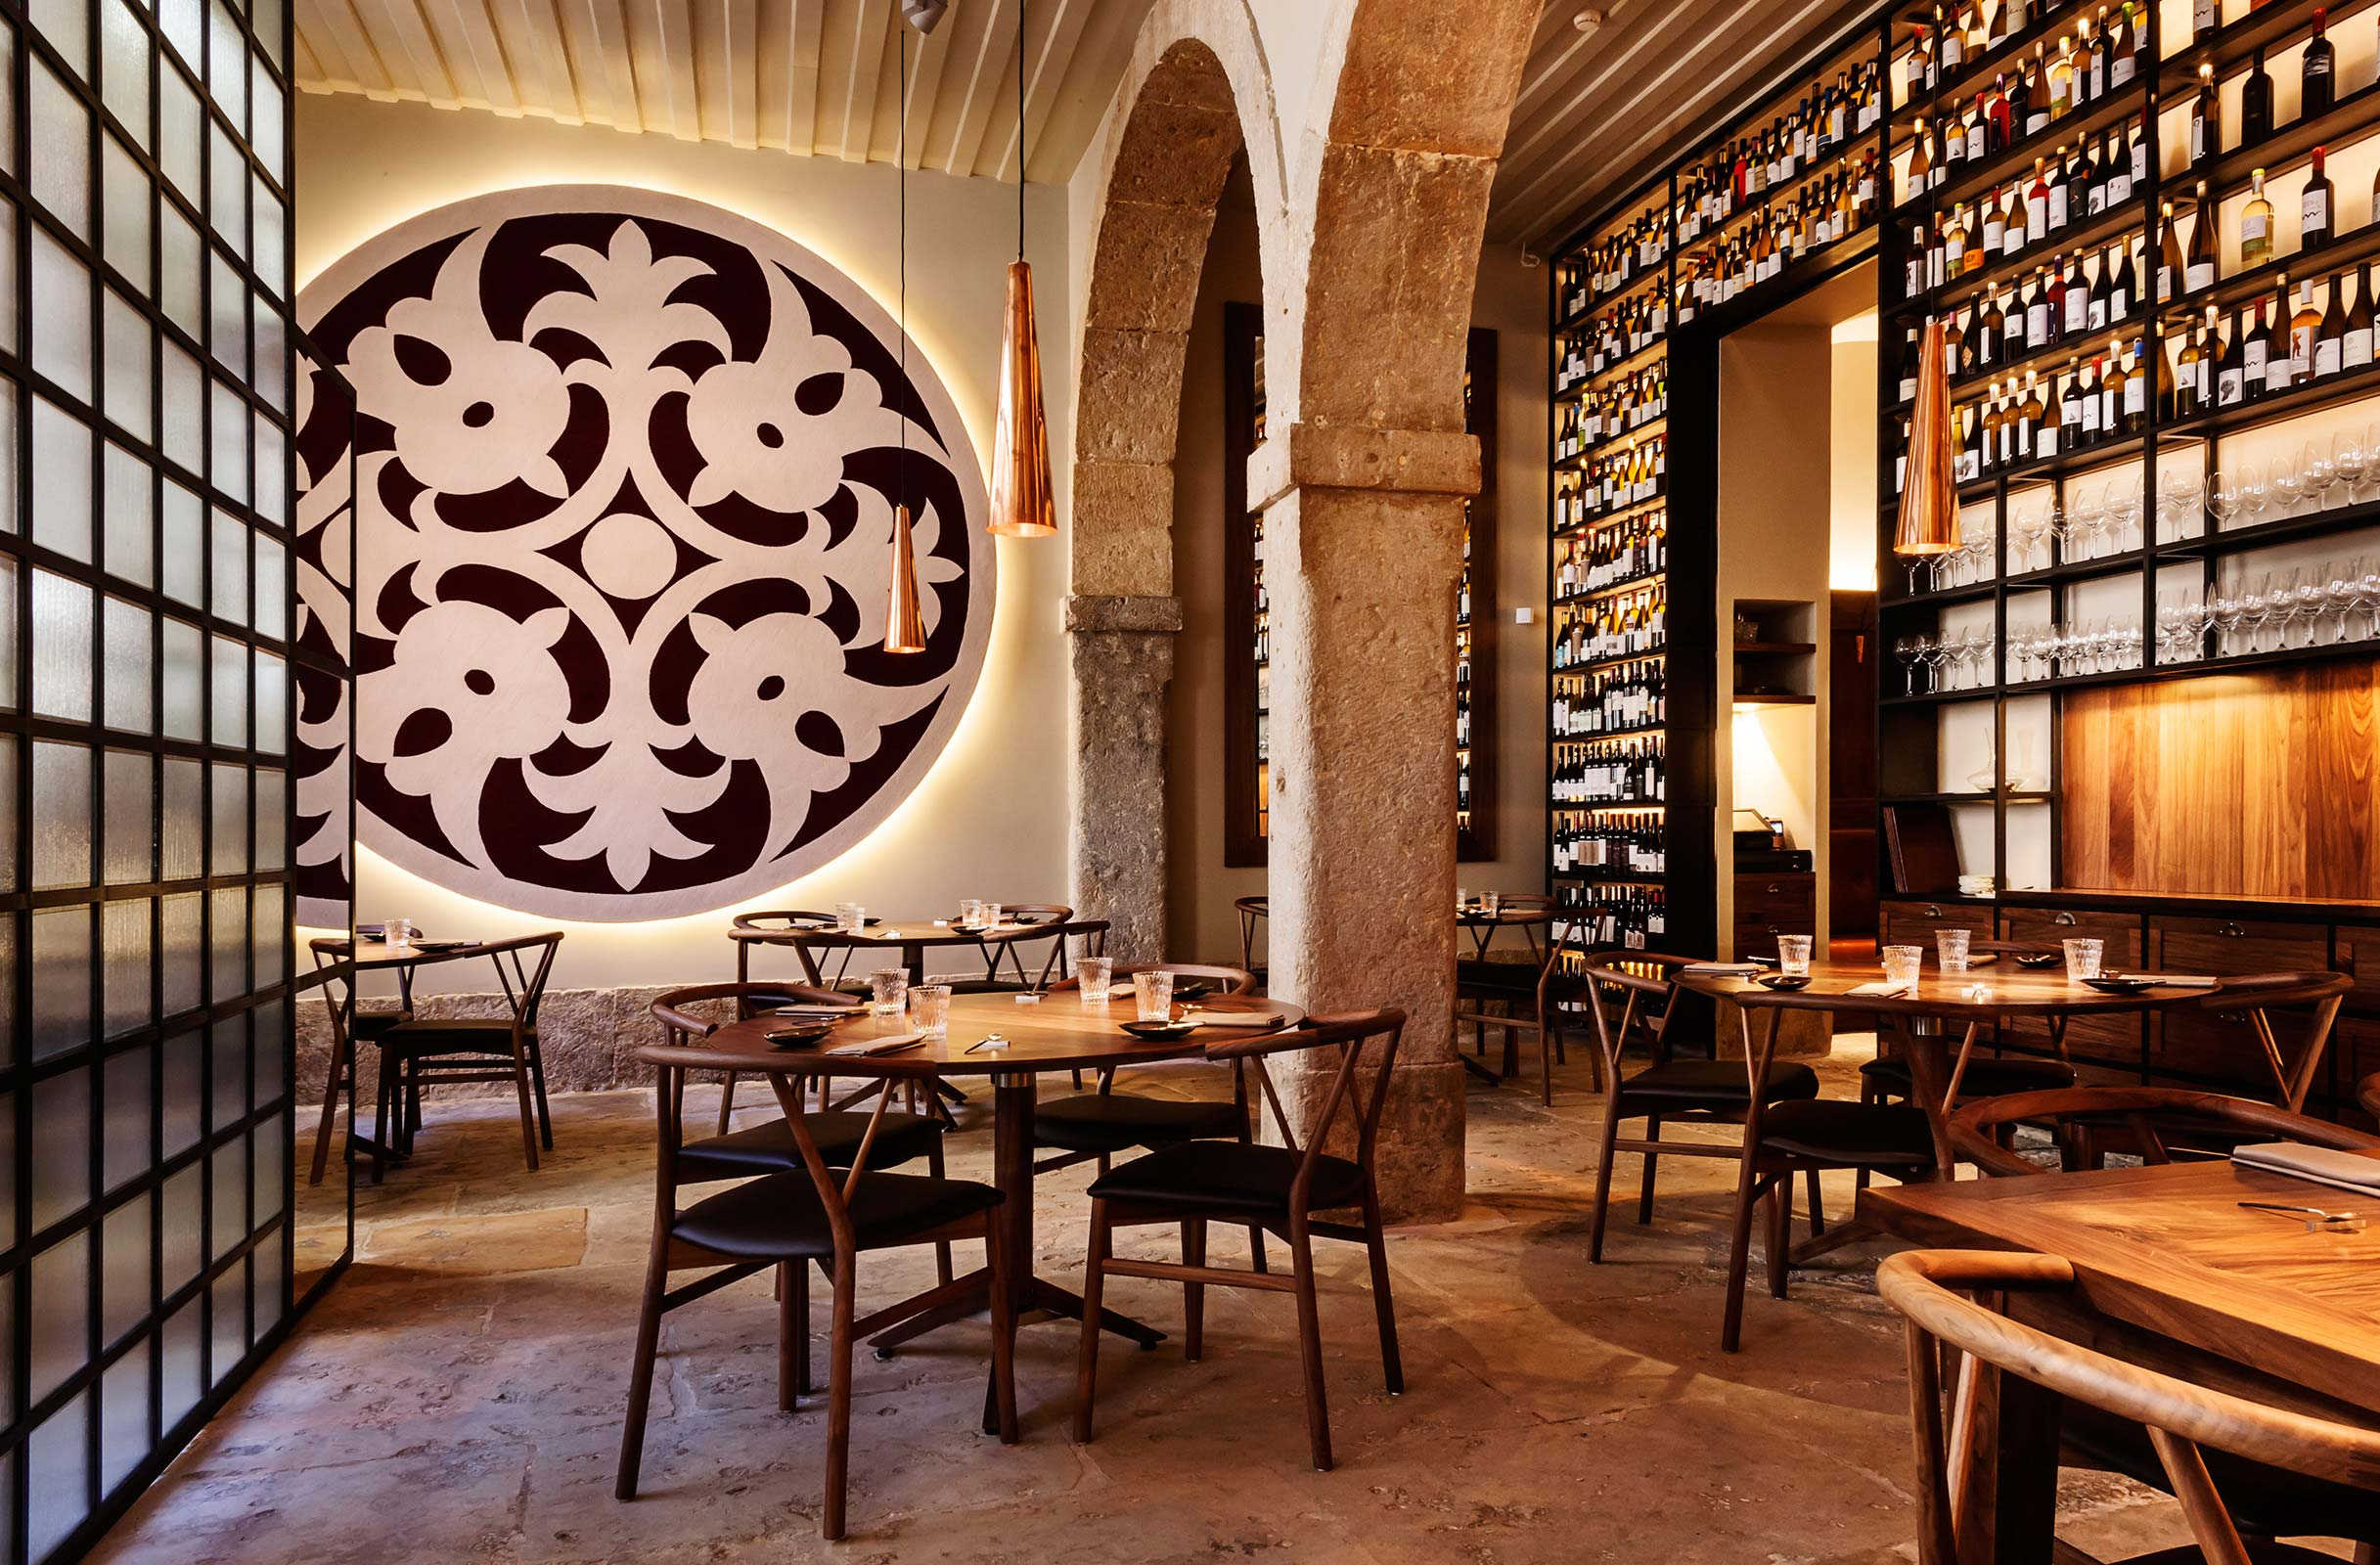 Fine-Dining Places: Discover the 'Alma' Restaurant in the heart of Lisbon alma restaurant Fine-Dining Places: Discover the ALMA Restaurant in the heart of Lisbon 800x400 6 big